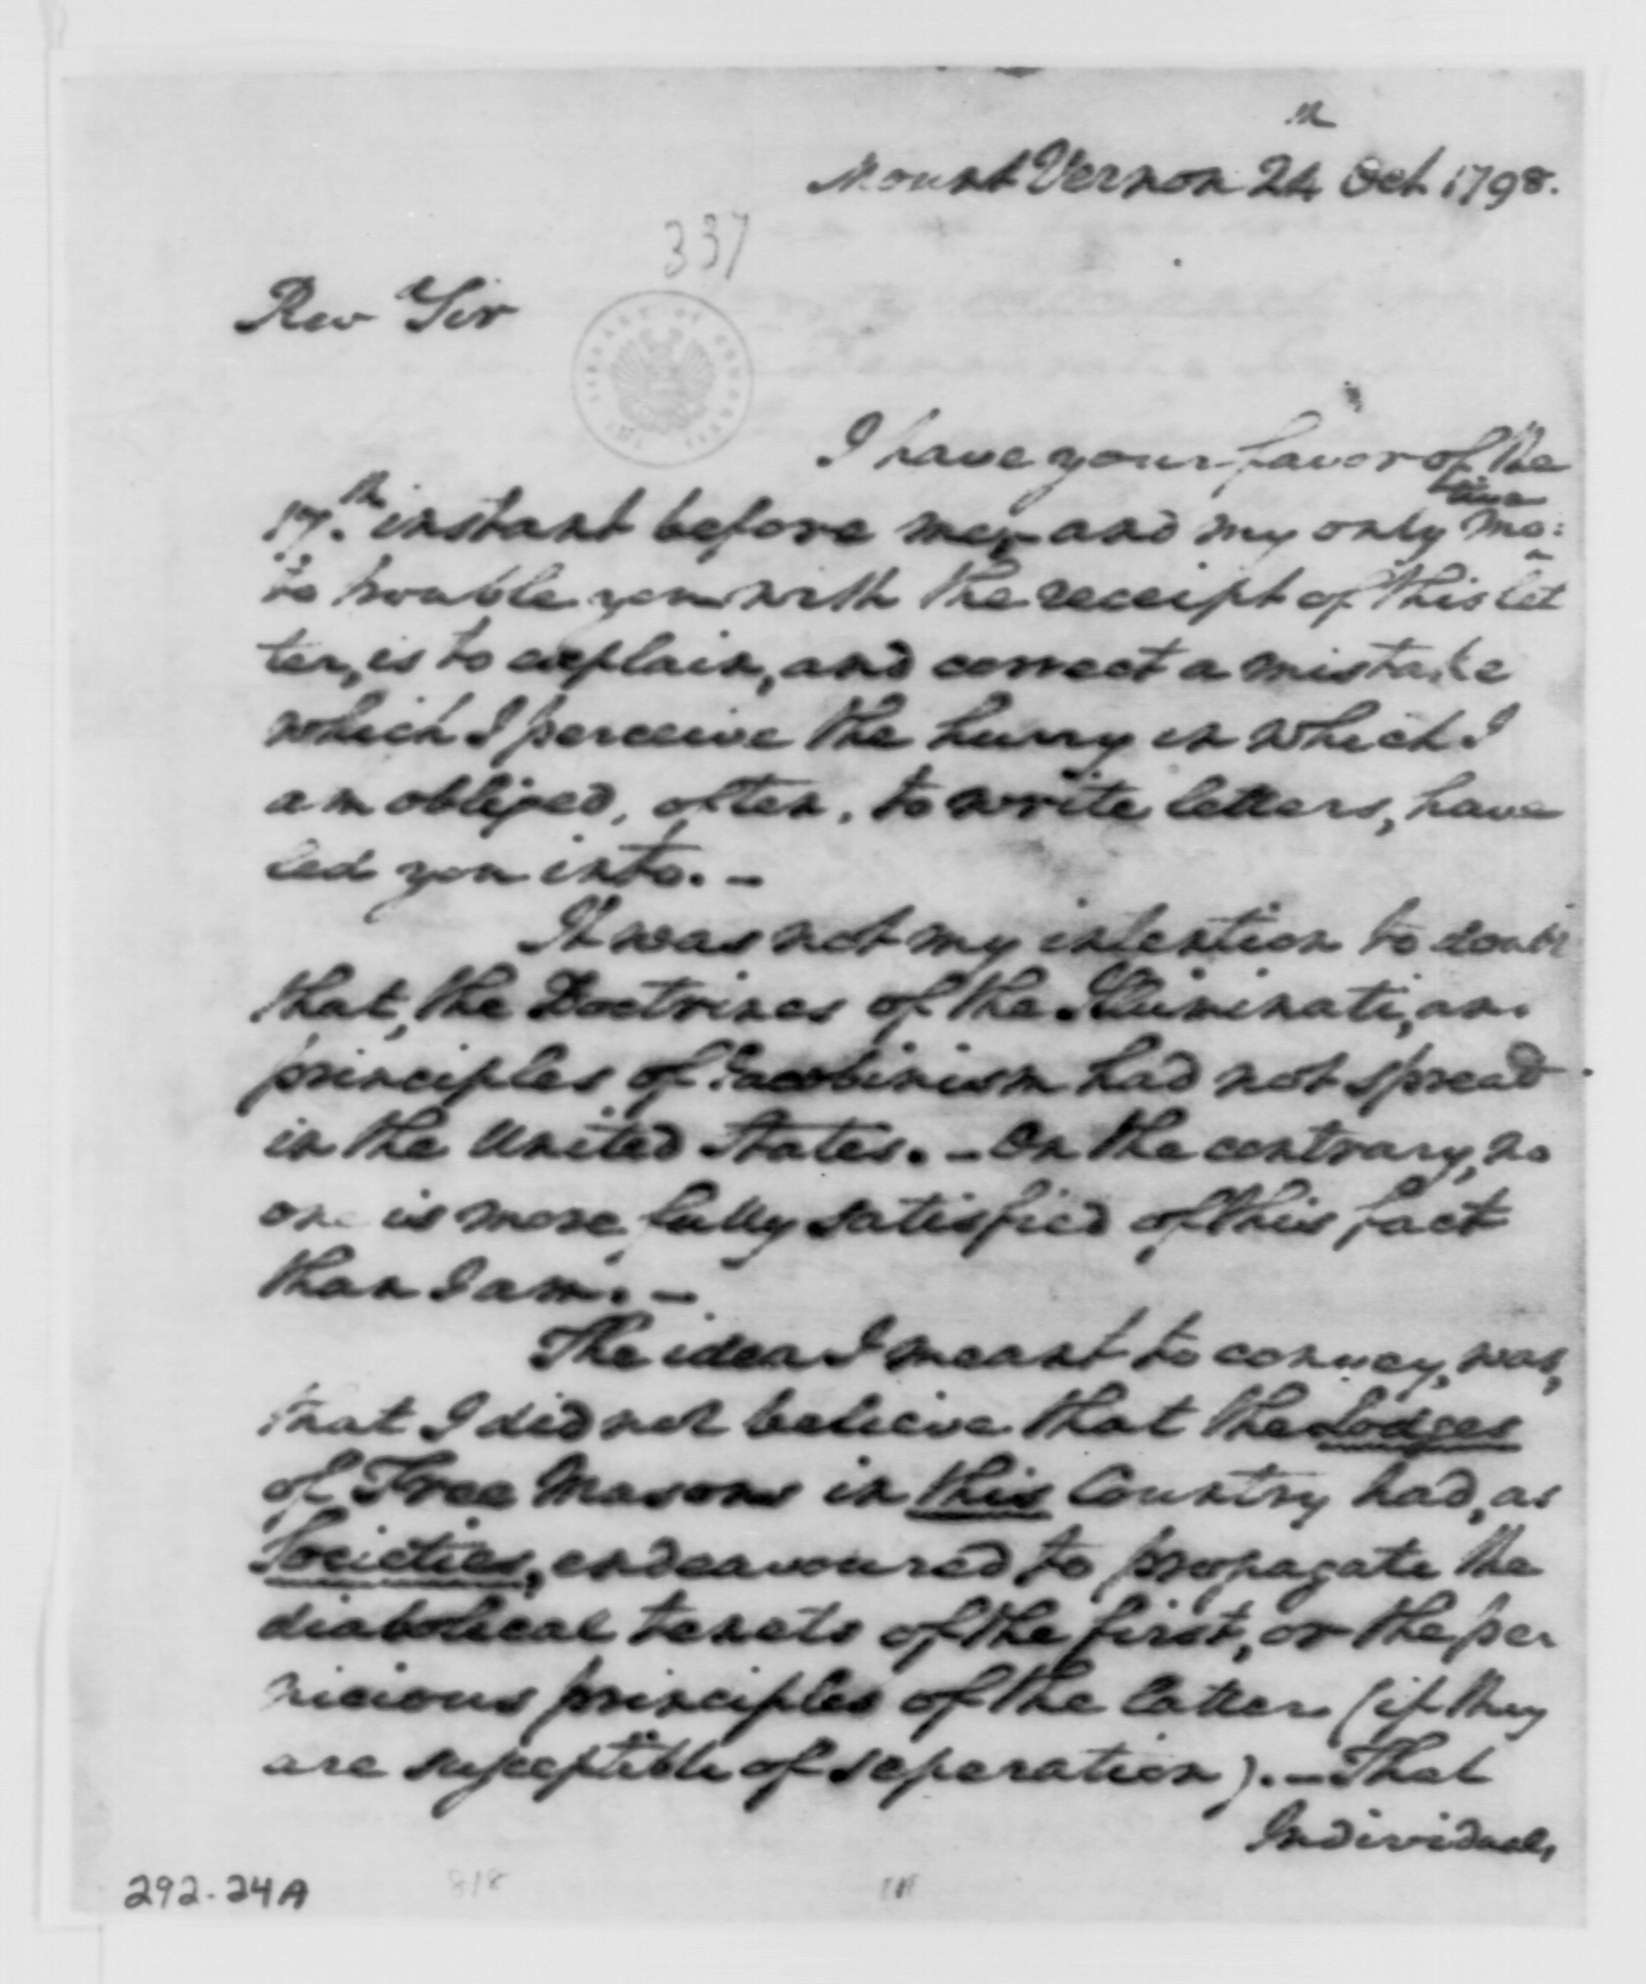 George Washington Illuminati Letter Oct 24th, 1798 - page 1 of 4